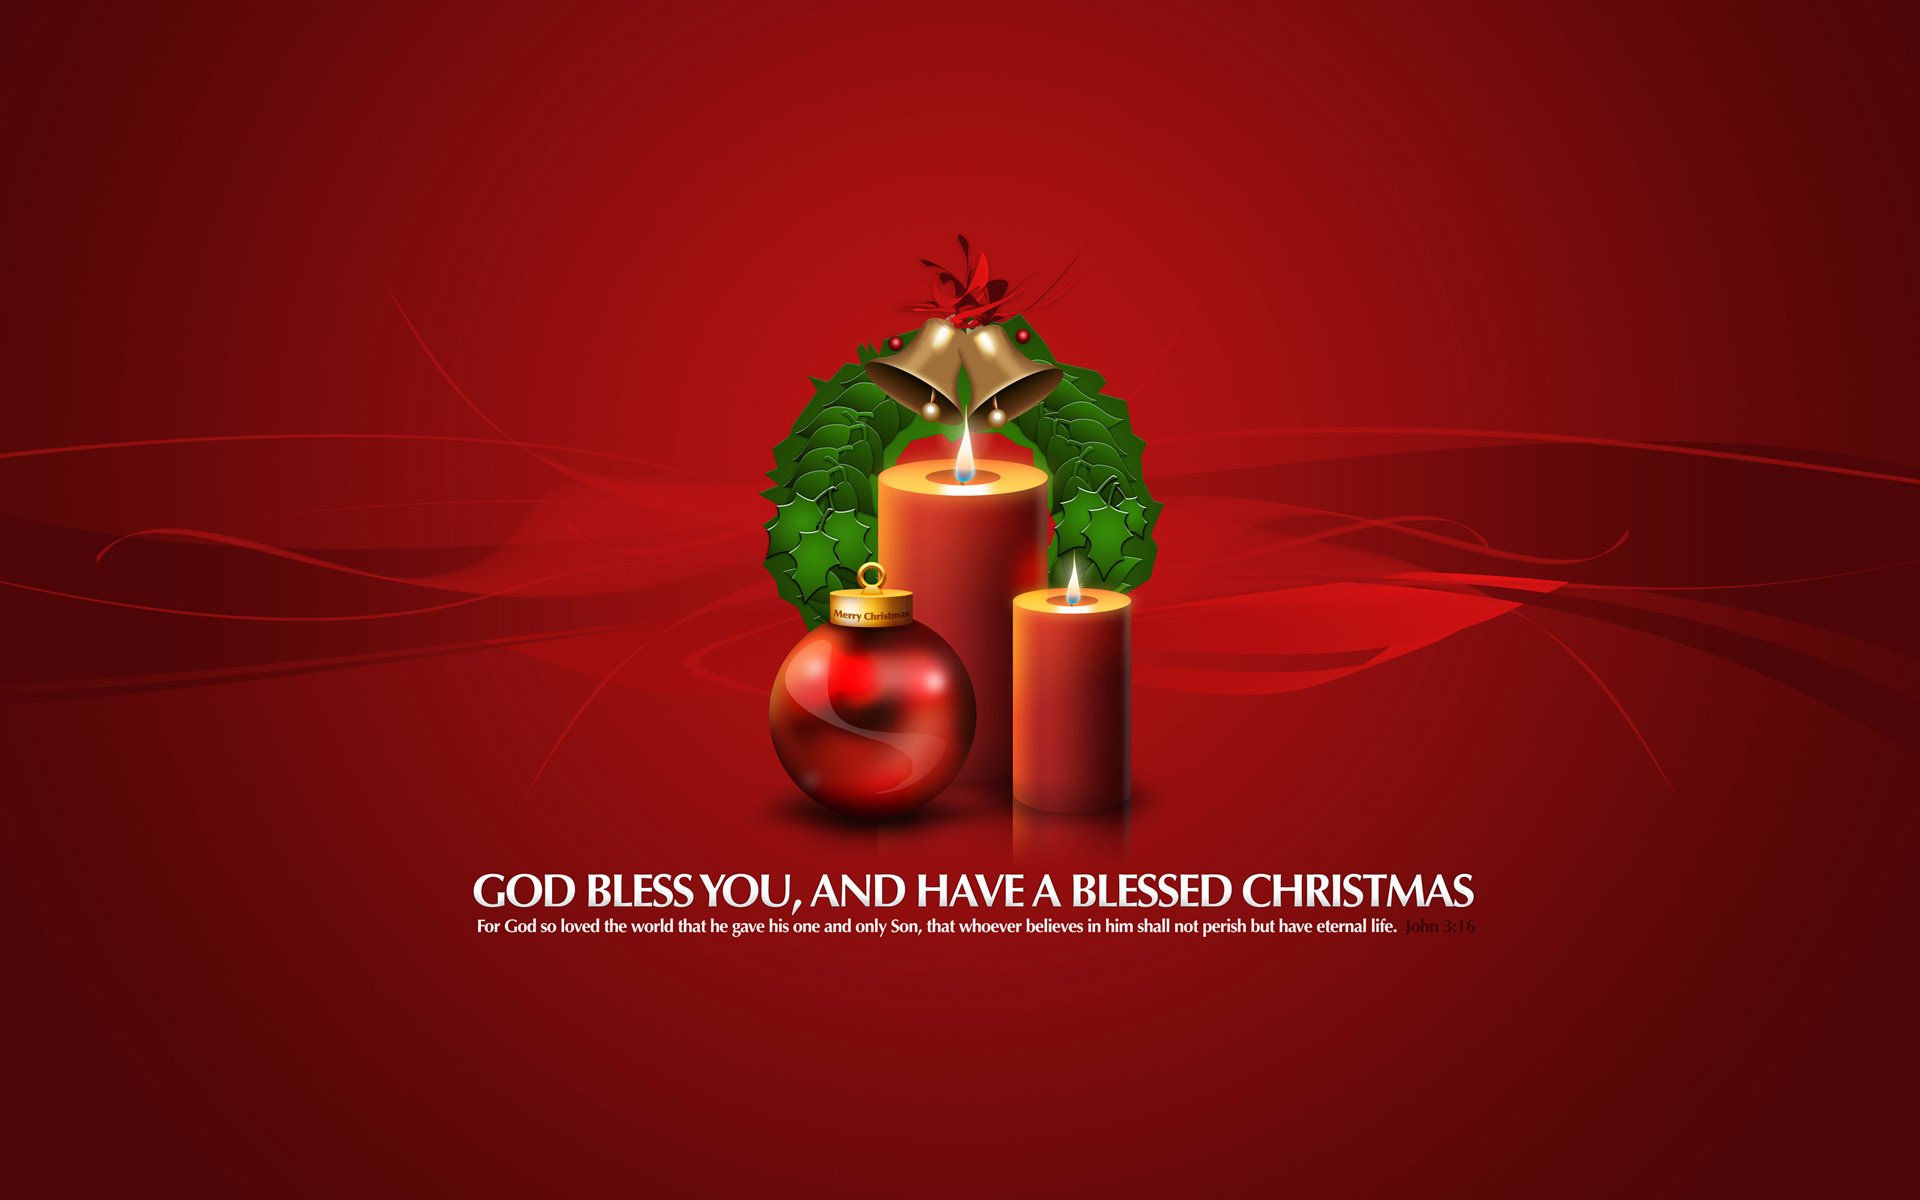 God Bless You Christmas Gifts wallpaper